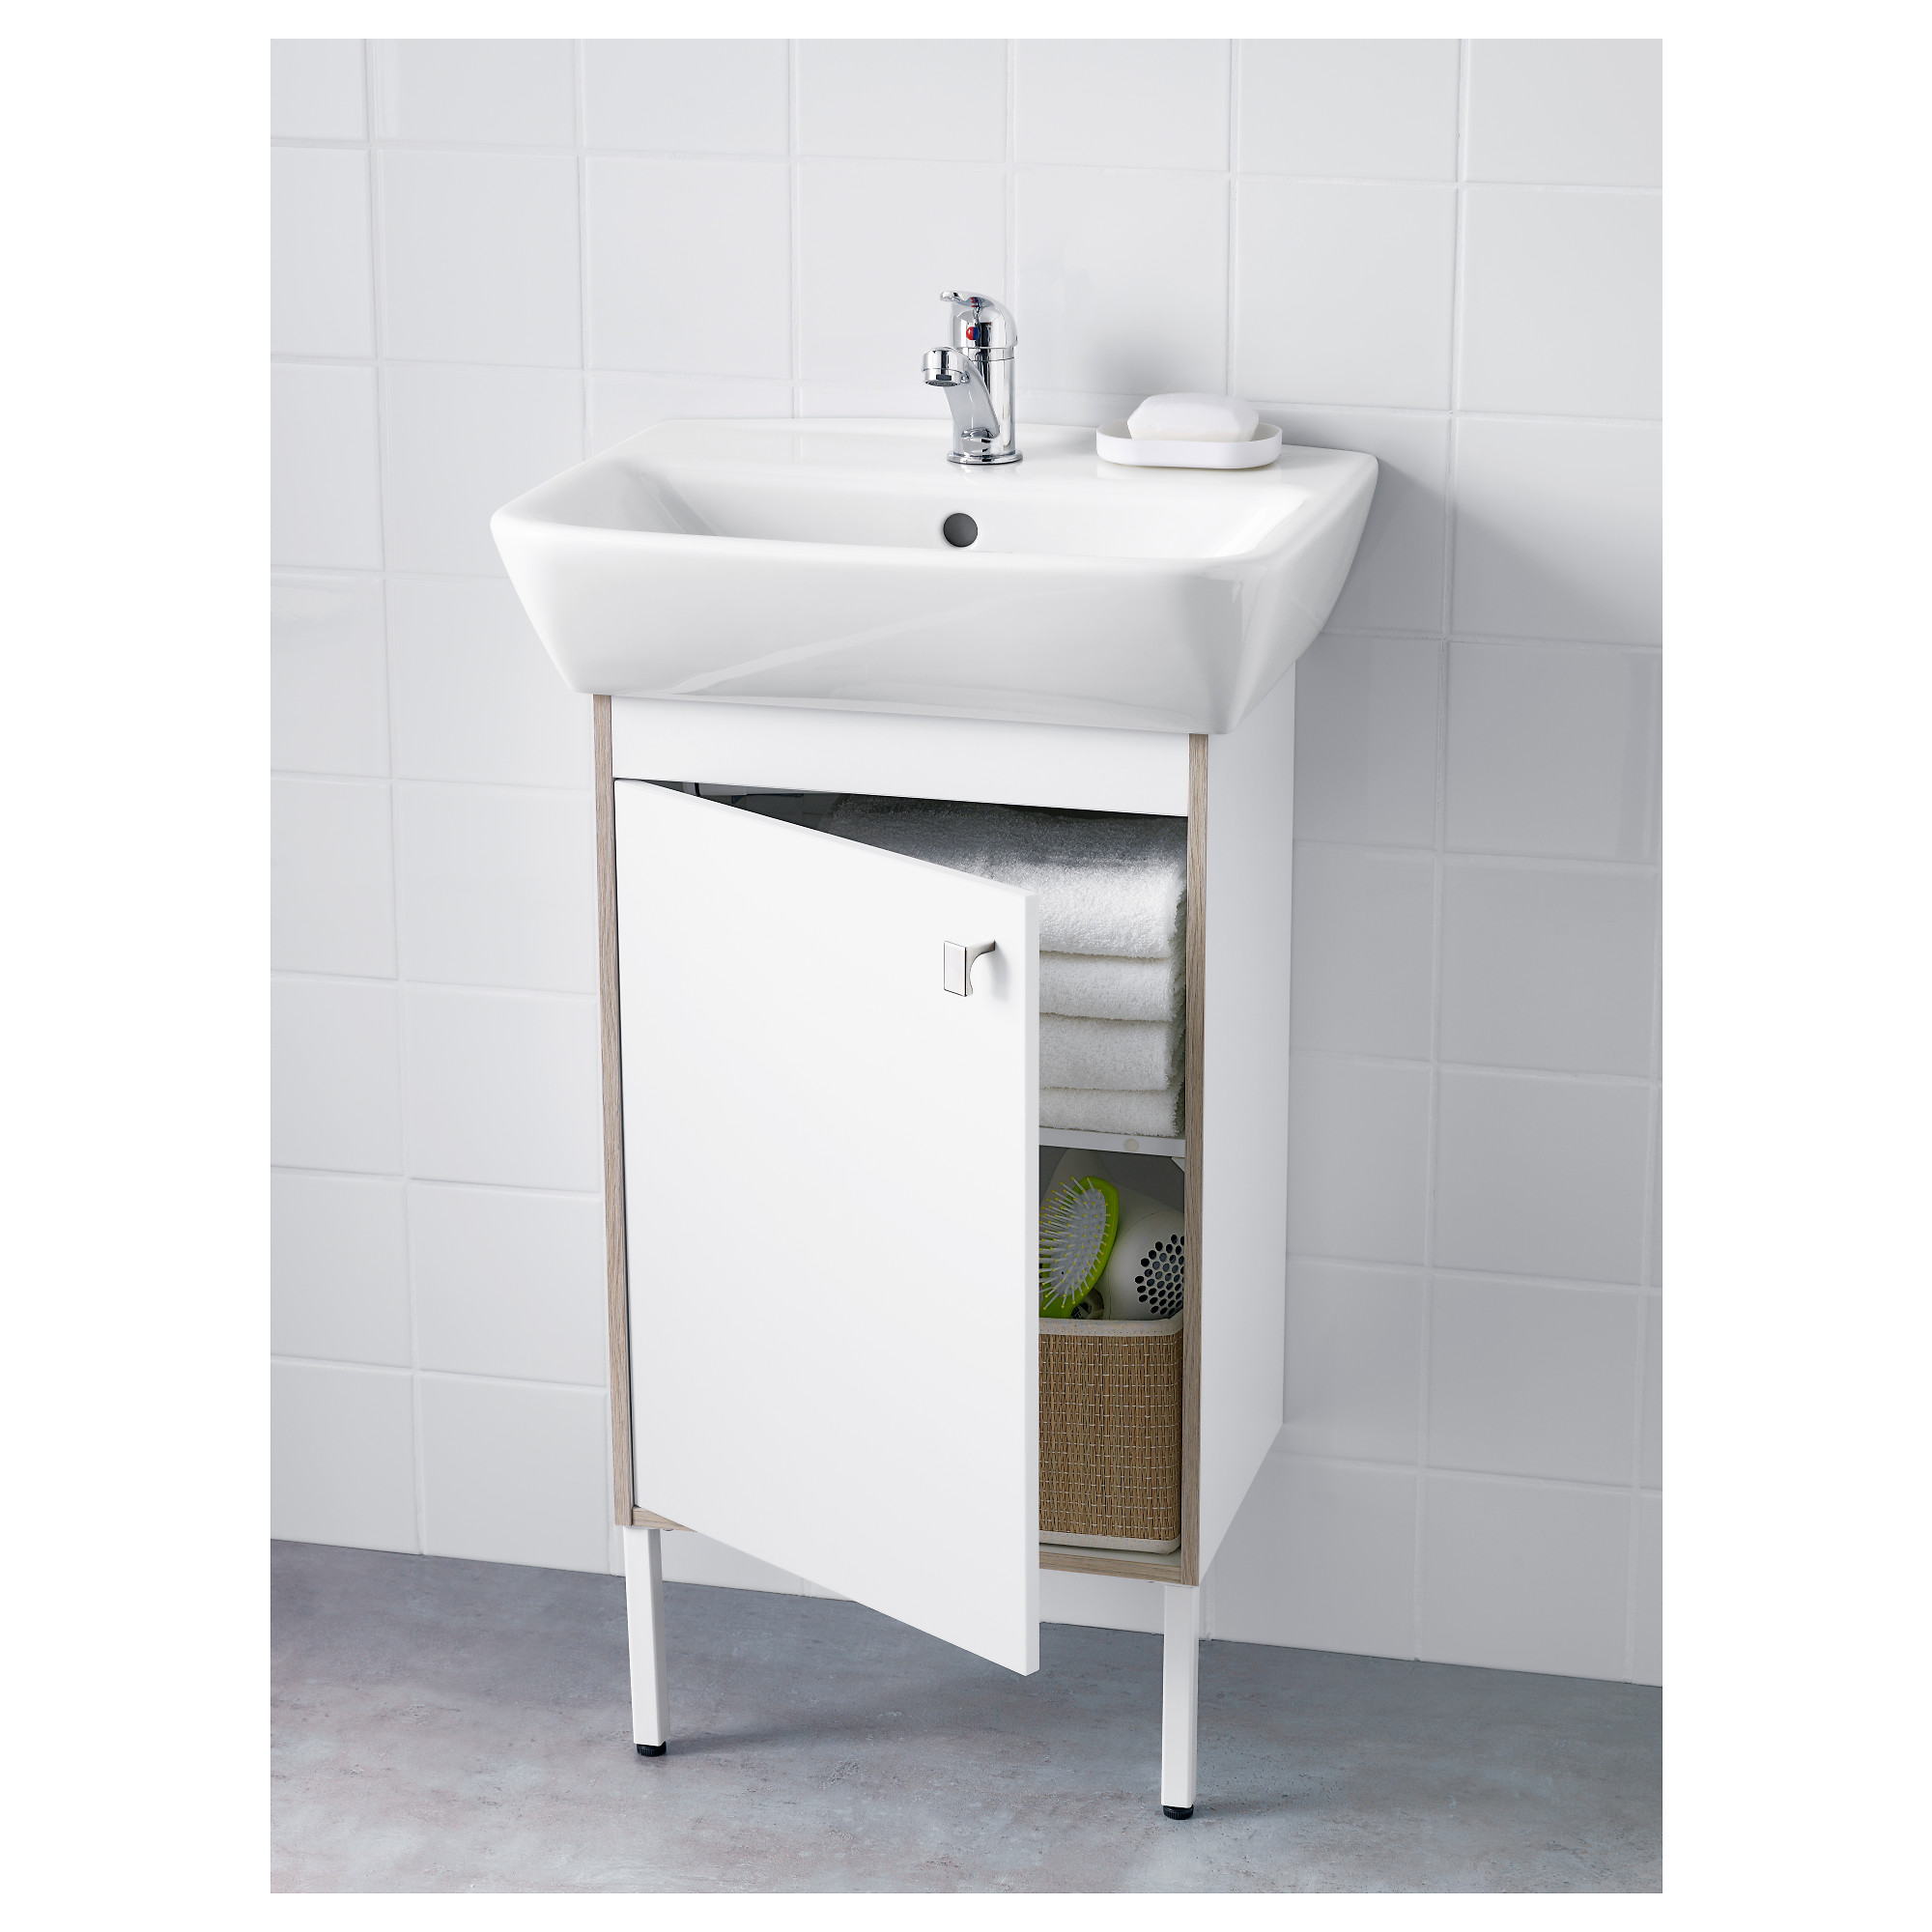 TYNGEN Sink cabinet with 1 door IKEA